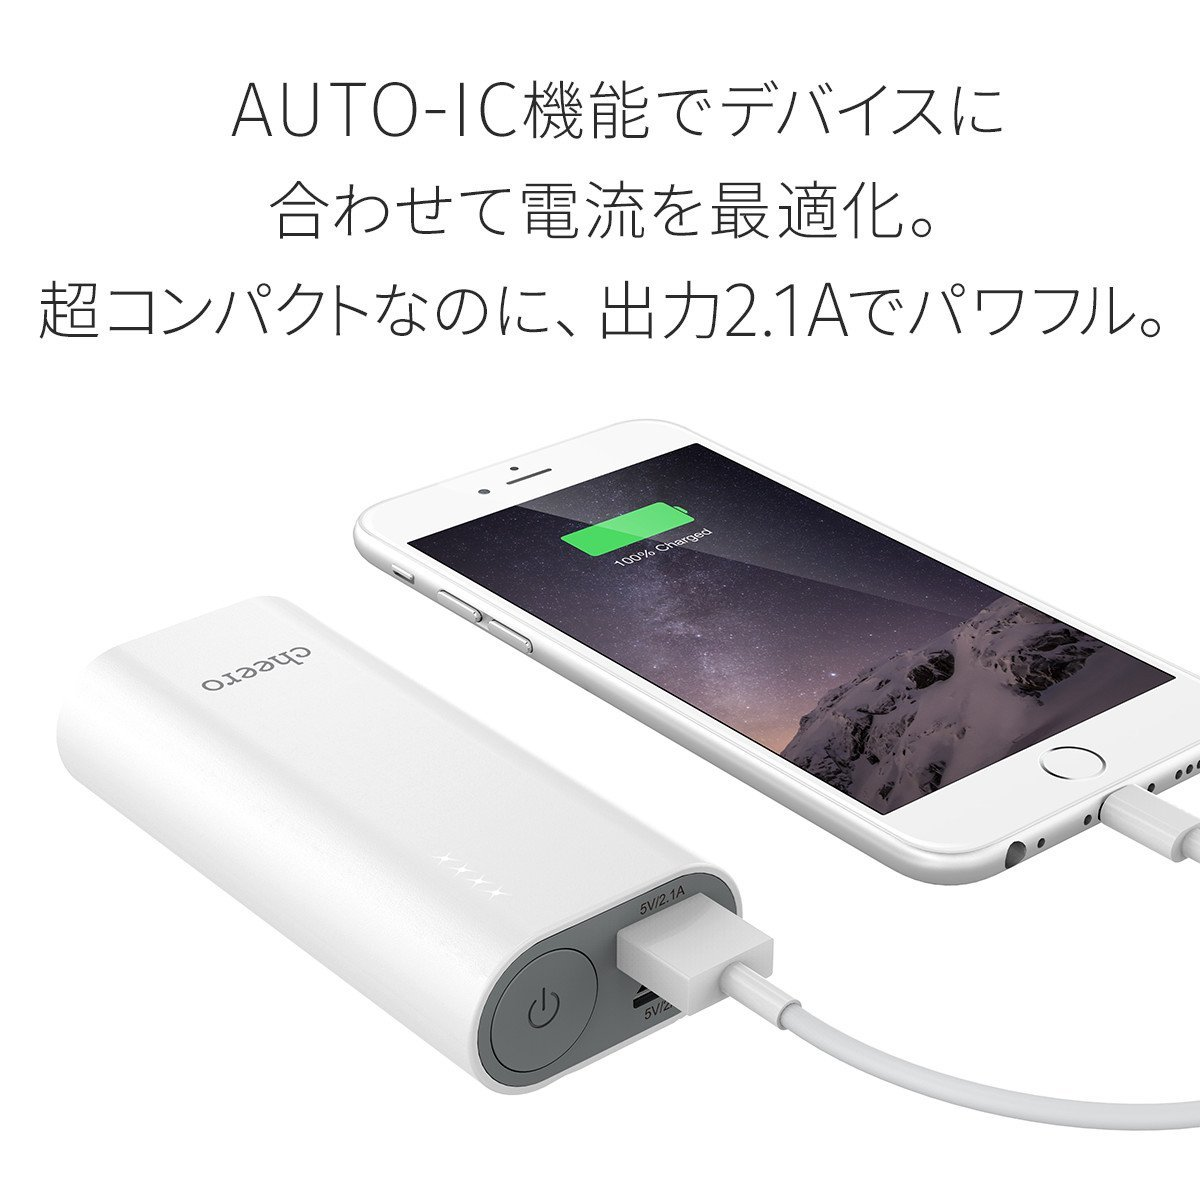 cheero Power Plus 3 mini 6700mAh が特価1,580円で発売中